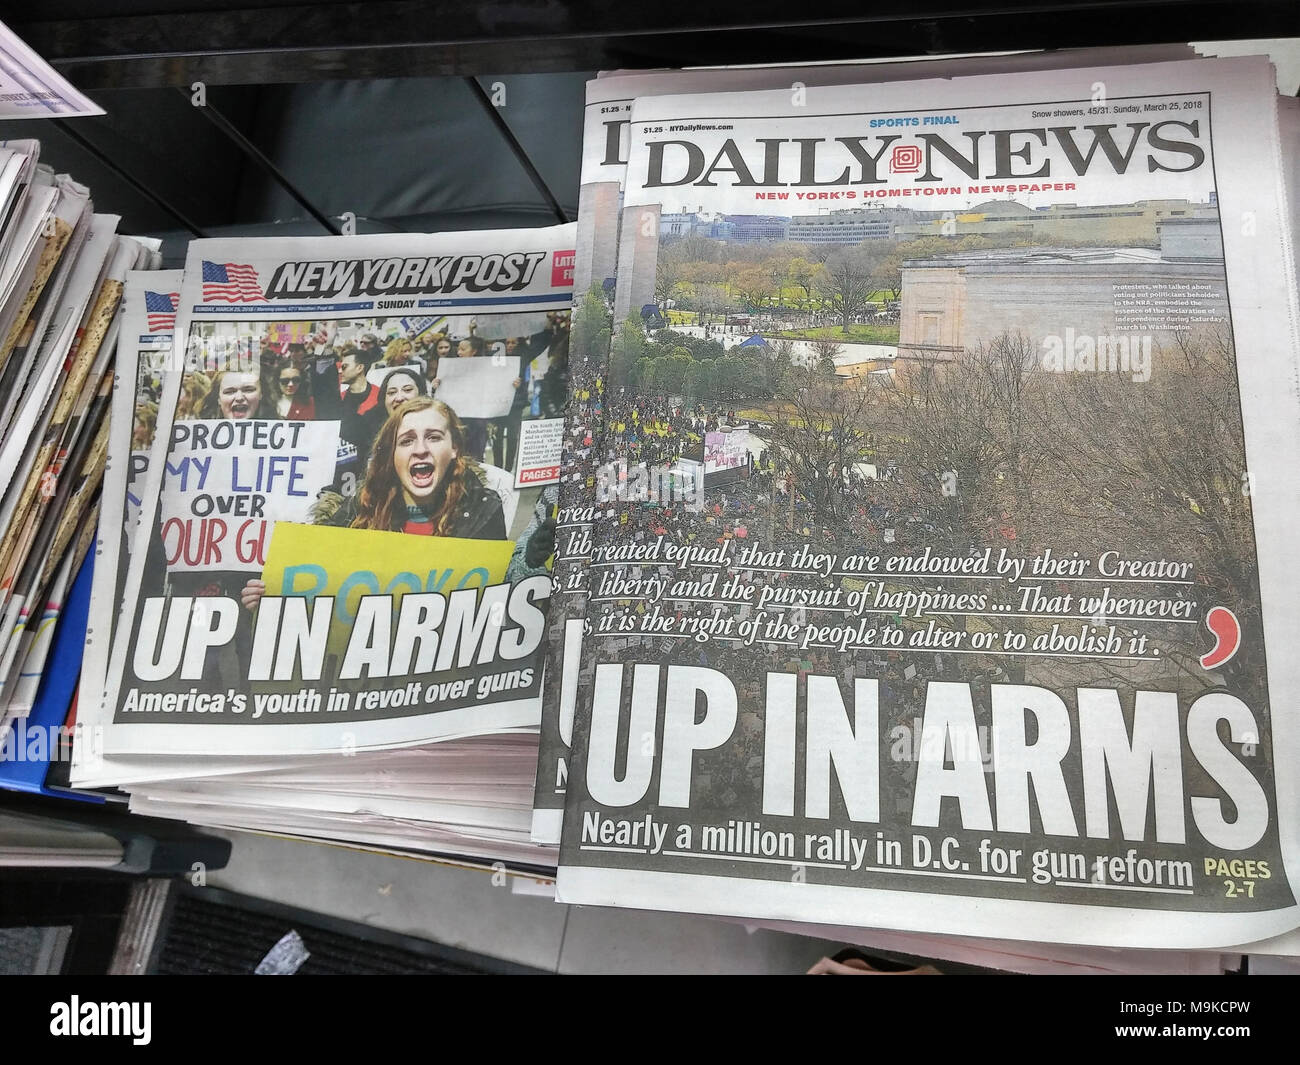 """Front pages of New York newspapers on Sunday, March 25, 2018 report on the previous days' """"March for Our Lives"""" rallies around the country and in Washington DC in response to the shooting at Marjory Stoneman Douglas High School in Parkland, Florida allegedly by 19 year-old Nikolas Cruz which left at least 17 dead. Both the intensely competitive New York Daily News and the New York Post use identical headlines. (© Richard B. Levine) Stock Photo"""